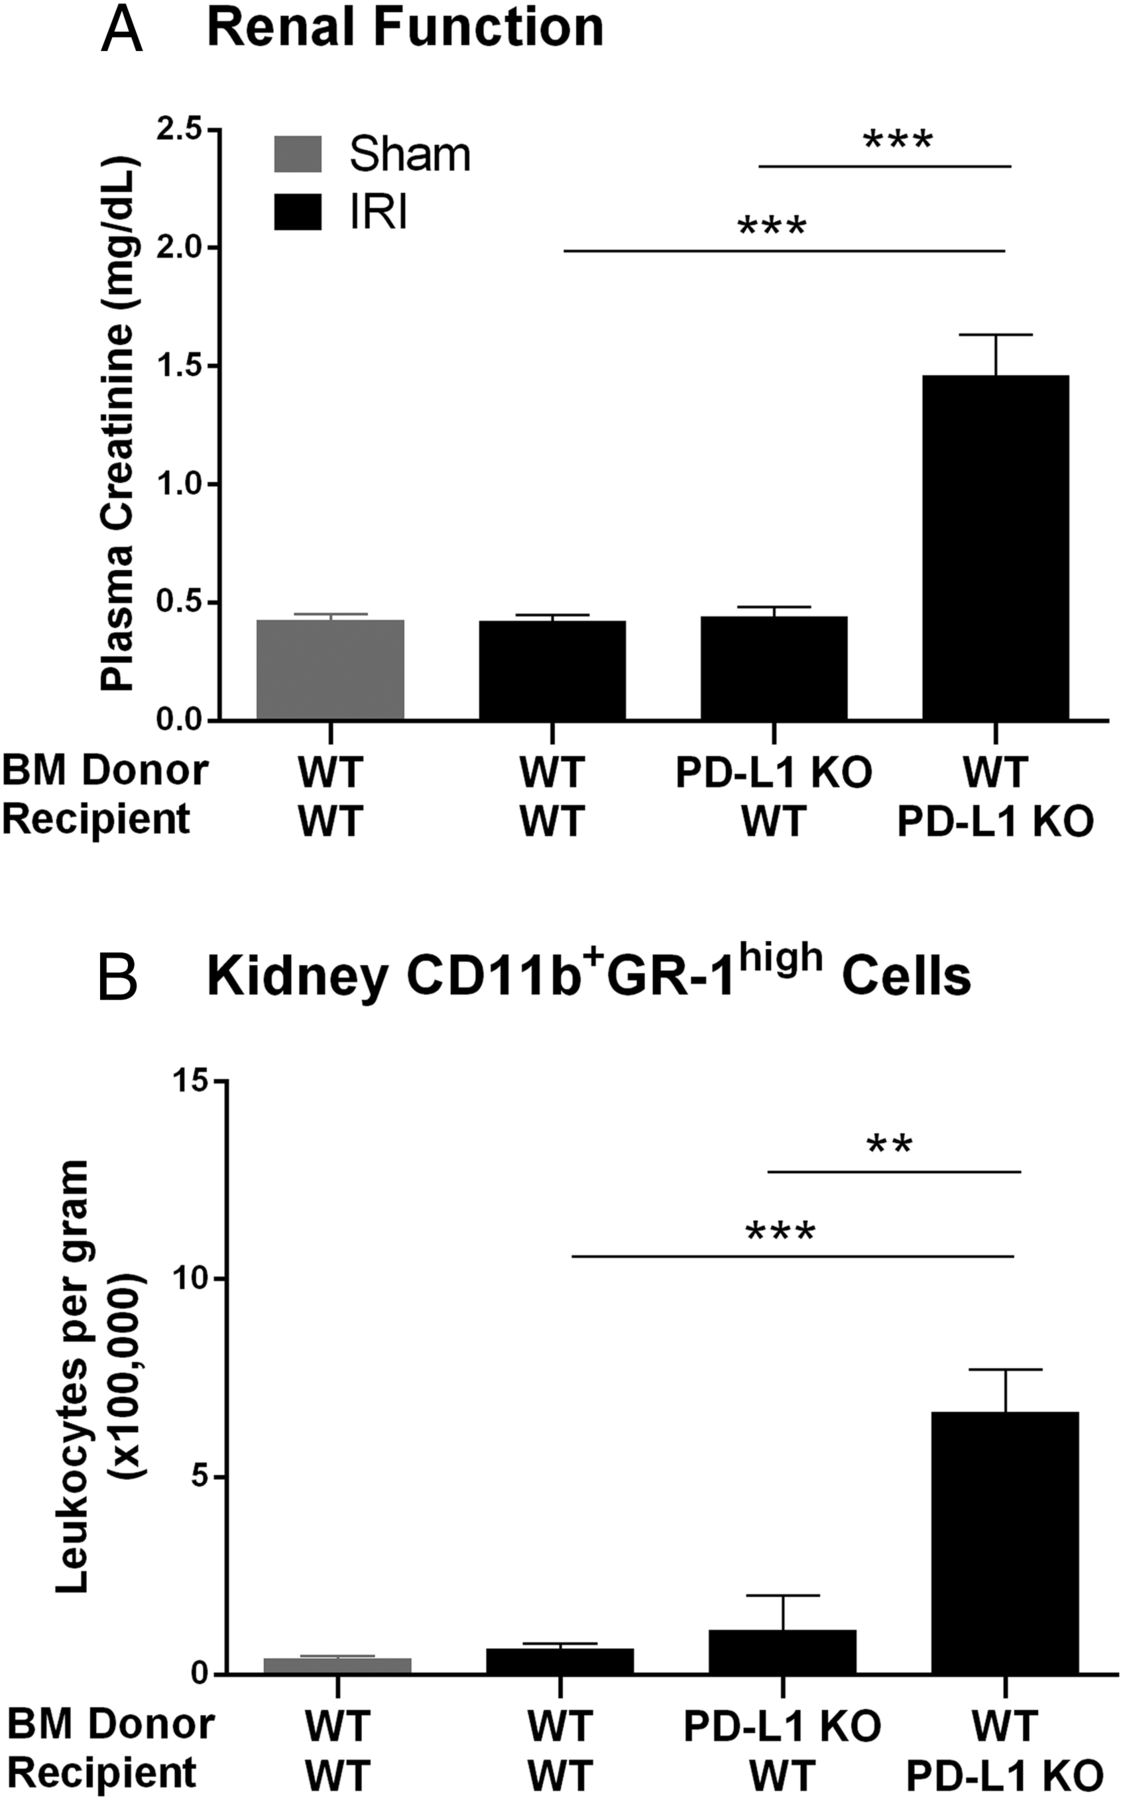 Both PD-1 Ligands Protect the Kidney from Ischemia